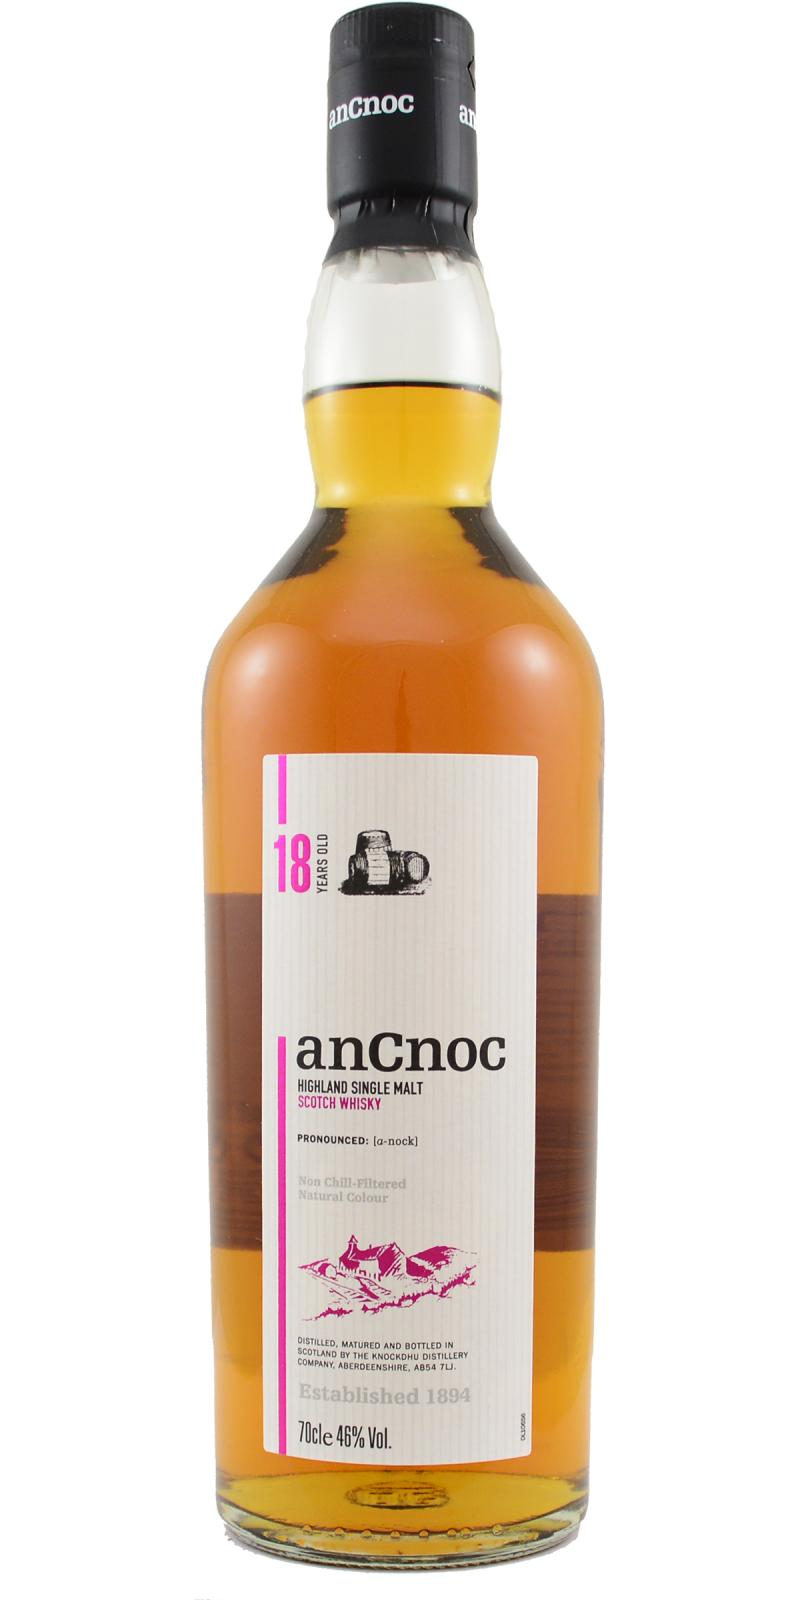 An Cnoc 18-year-old